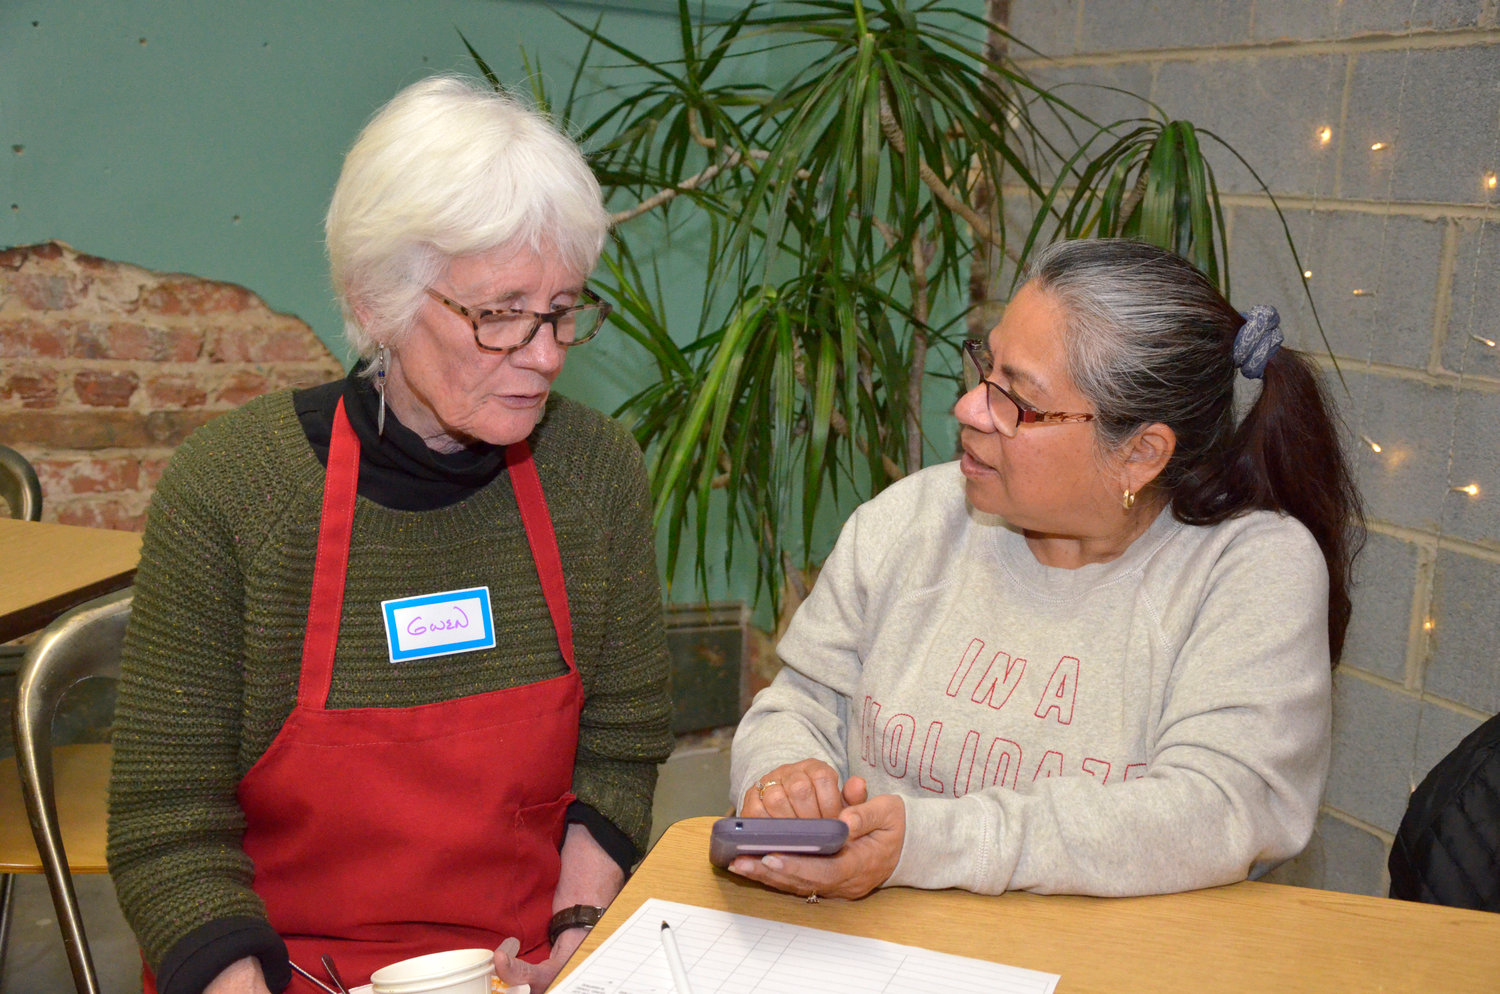 Gwen Overturf, left, talks with Maria Soto at the free supper event.  Soto said that she comes to meet new people, and interact with others.